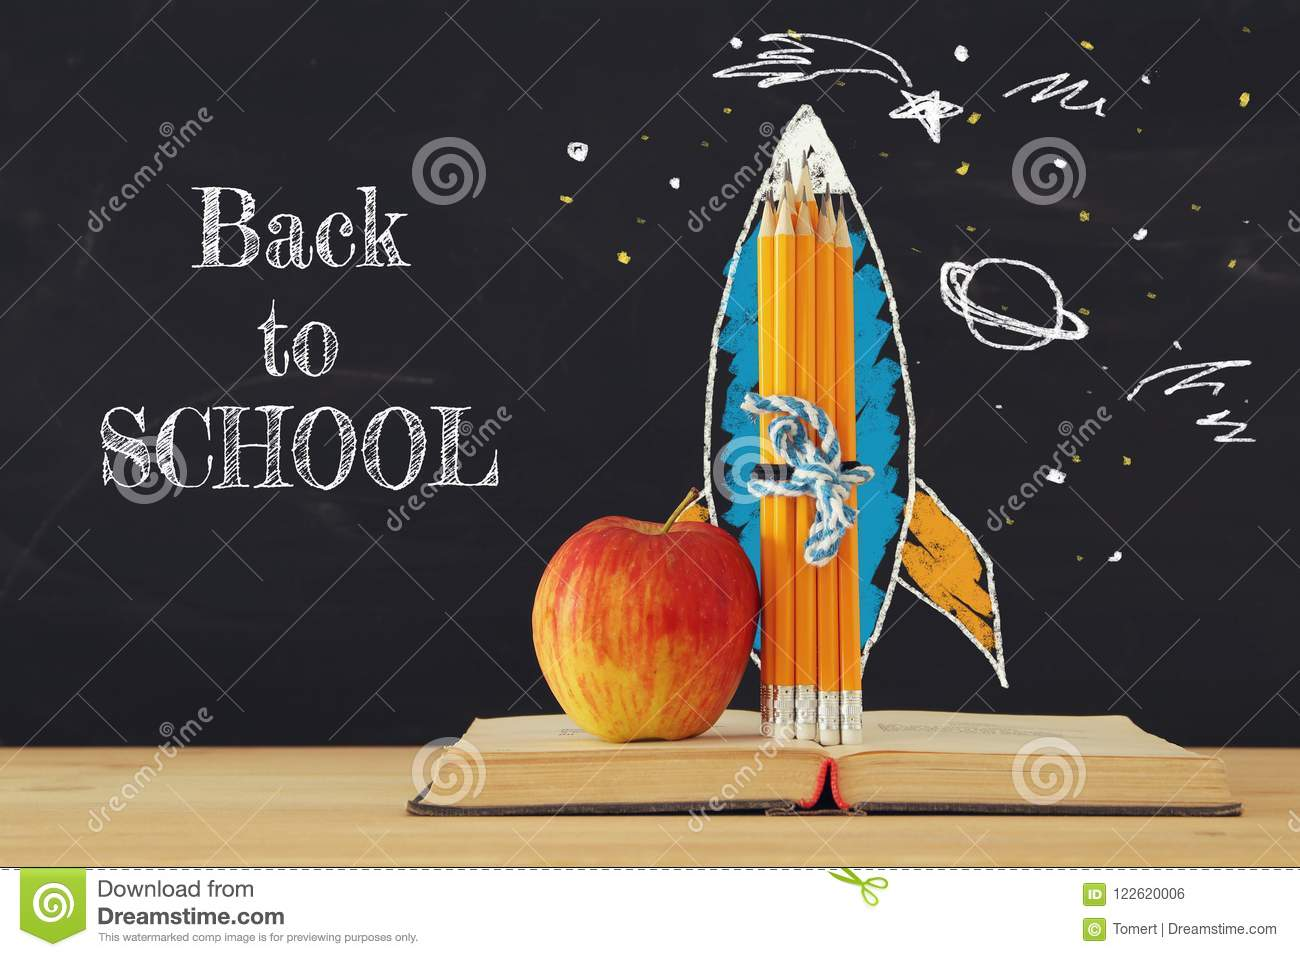 Back to school concept. rocket sketch and pencils over open book in front of classroom blackboard.